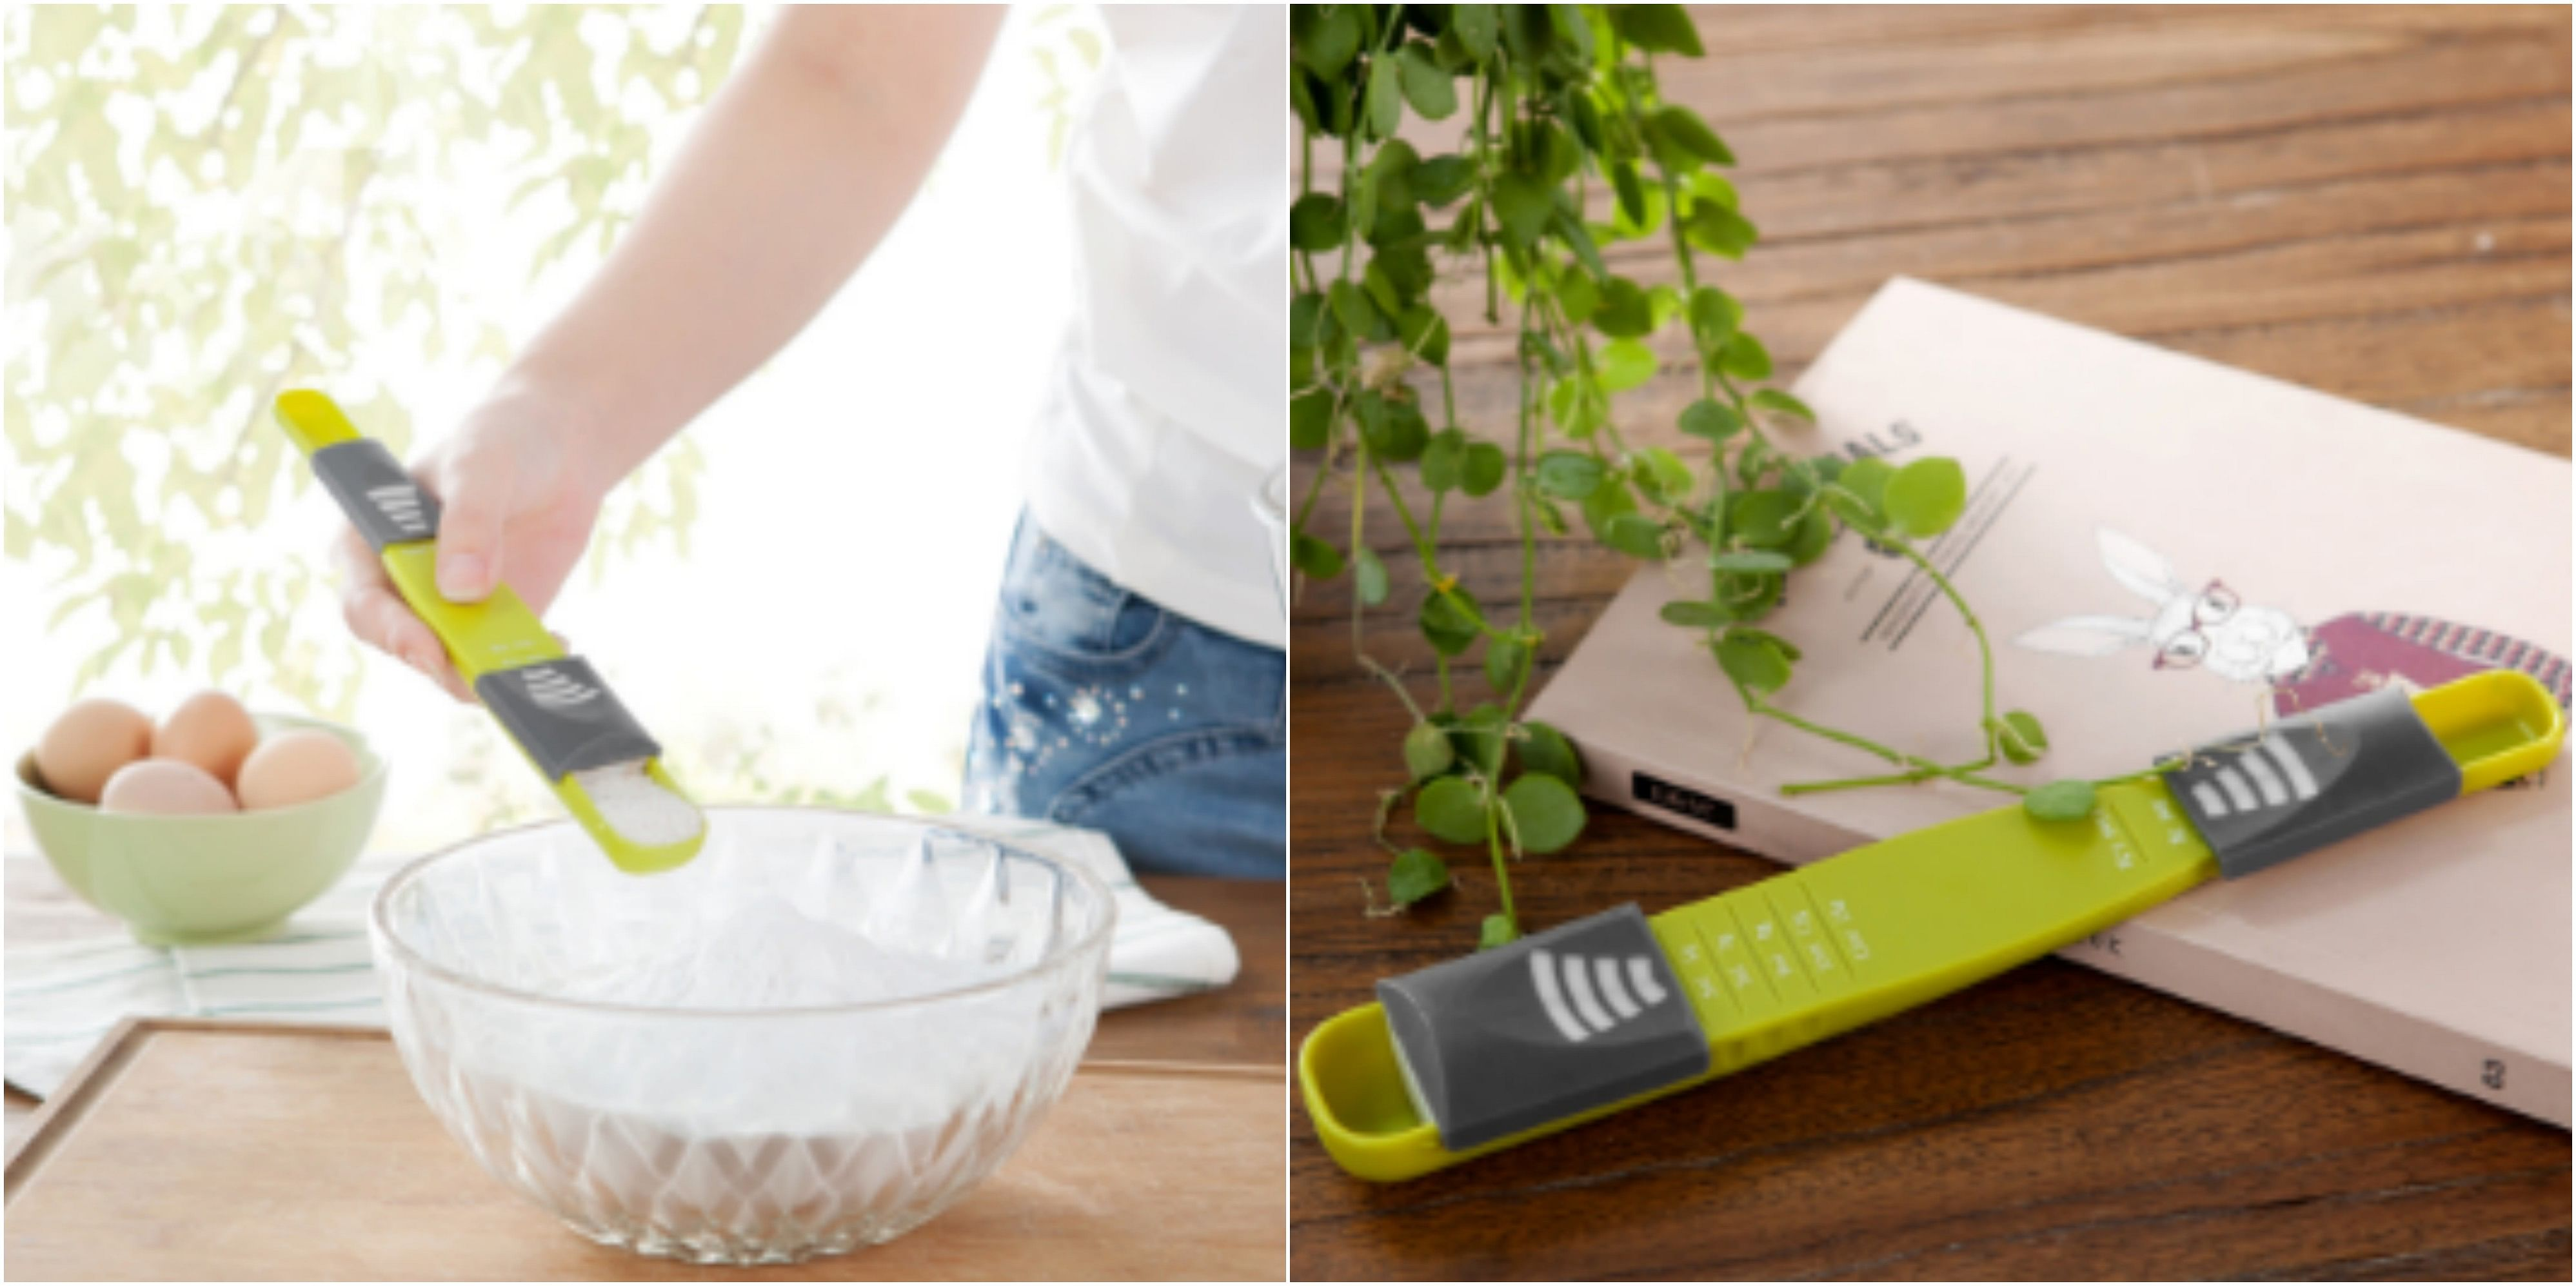 Super cheap and useful kitchen tools from taobao home for Super cheap home decor